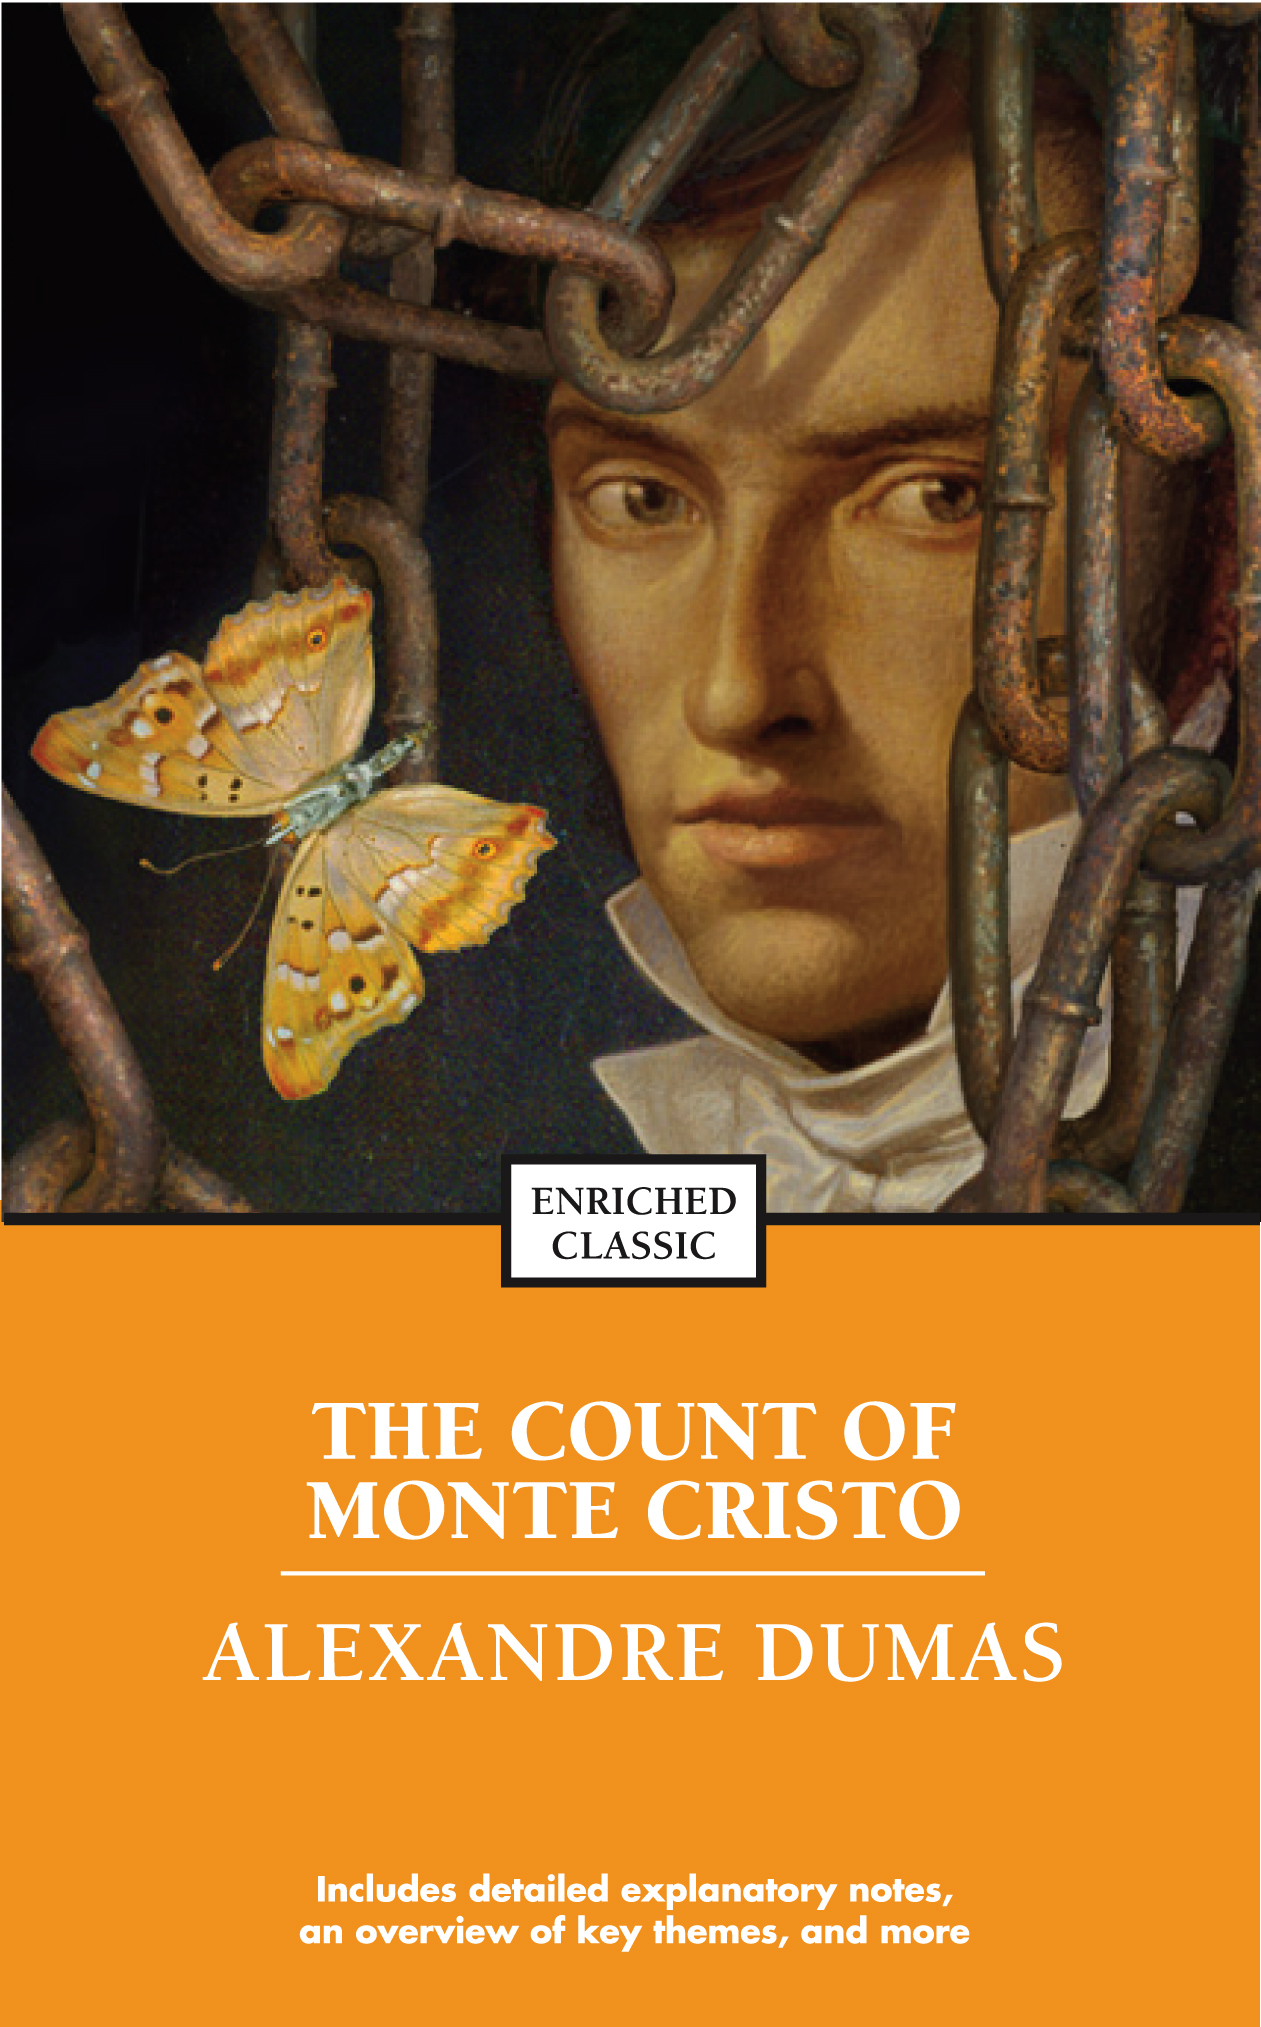 an examination of the count of monte cristo by alexandre dumas The count of monte cristo(基督山伯爵)免费在线阅读或下载到手机。the count of monte cristo is an adventure novel by alexandre dumas, père it is.